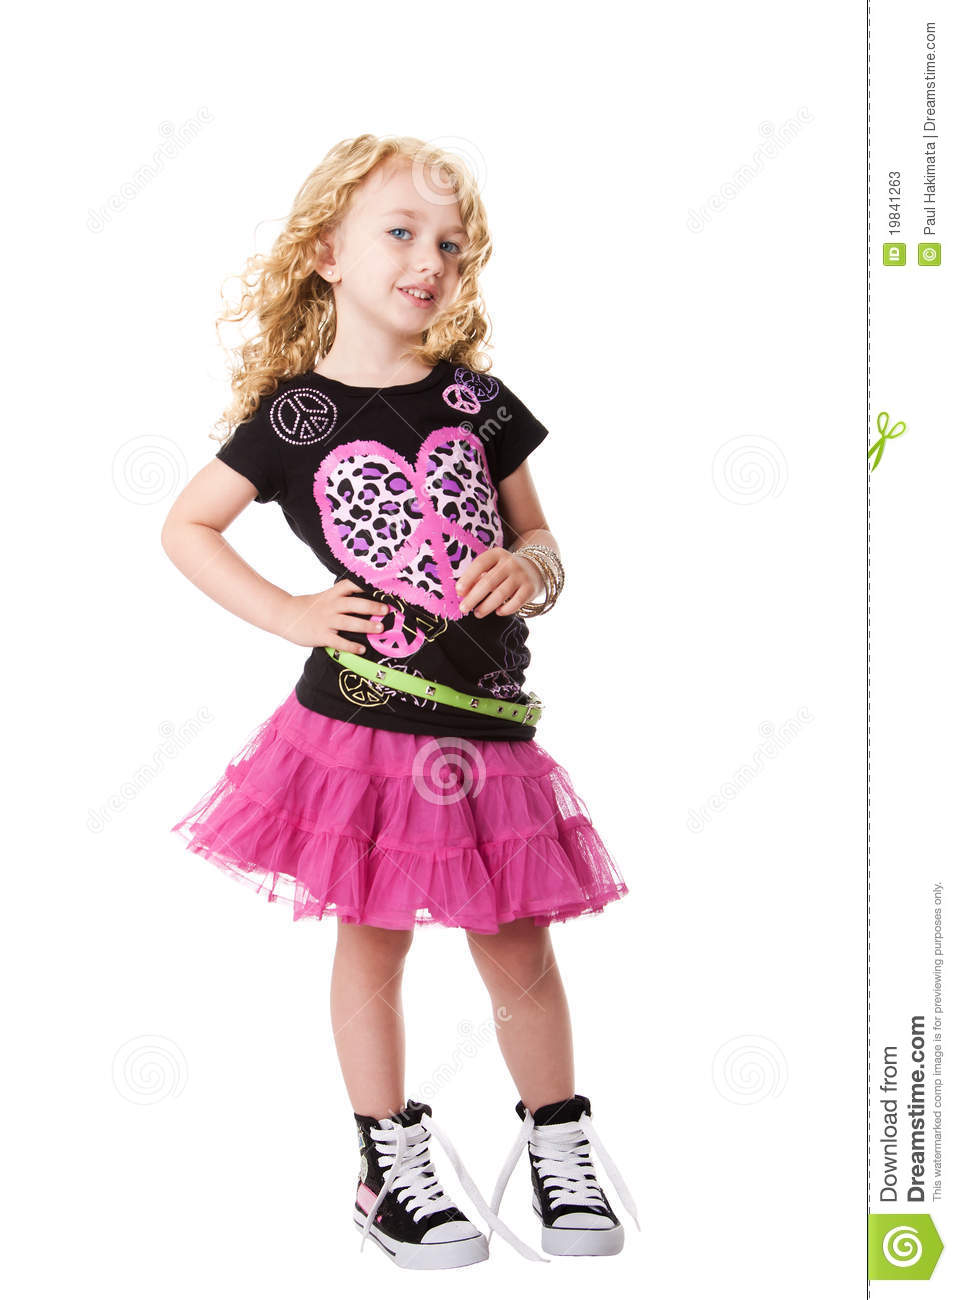 Fashion rock n roll child stock image. Image of black - 19841263 a9c460311a